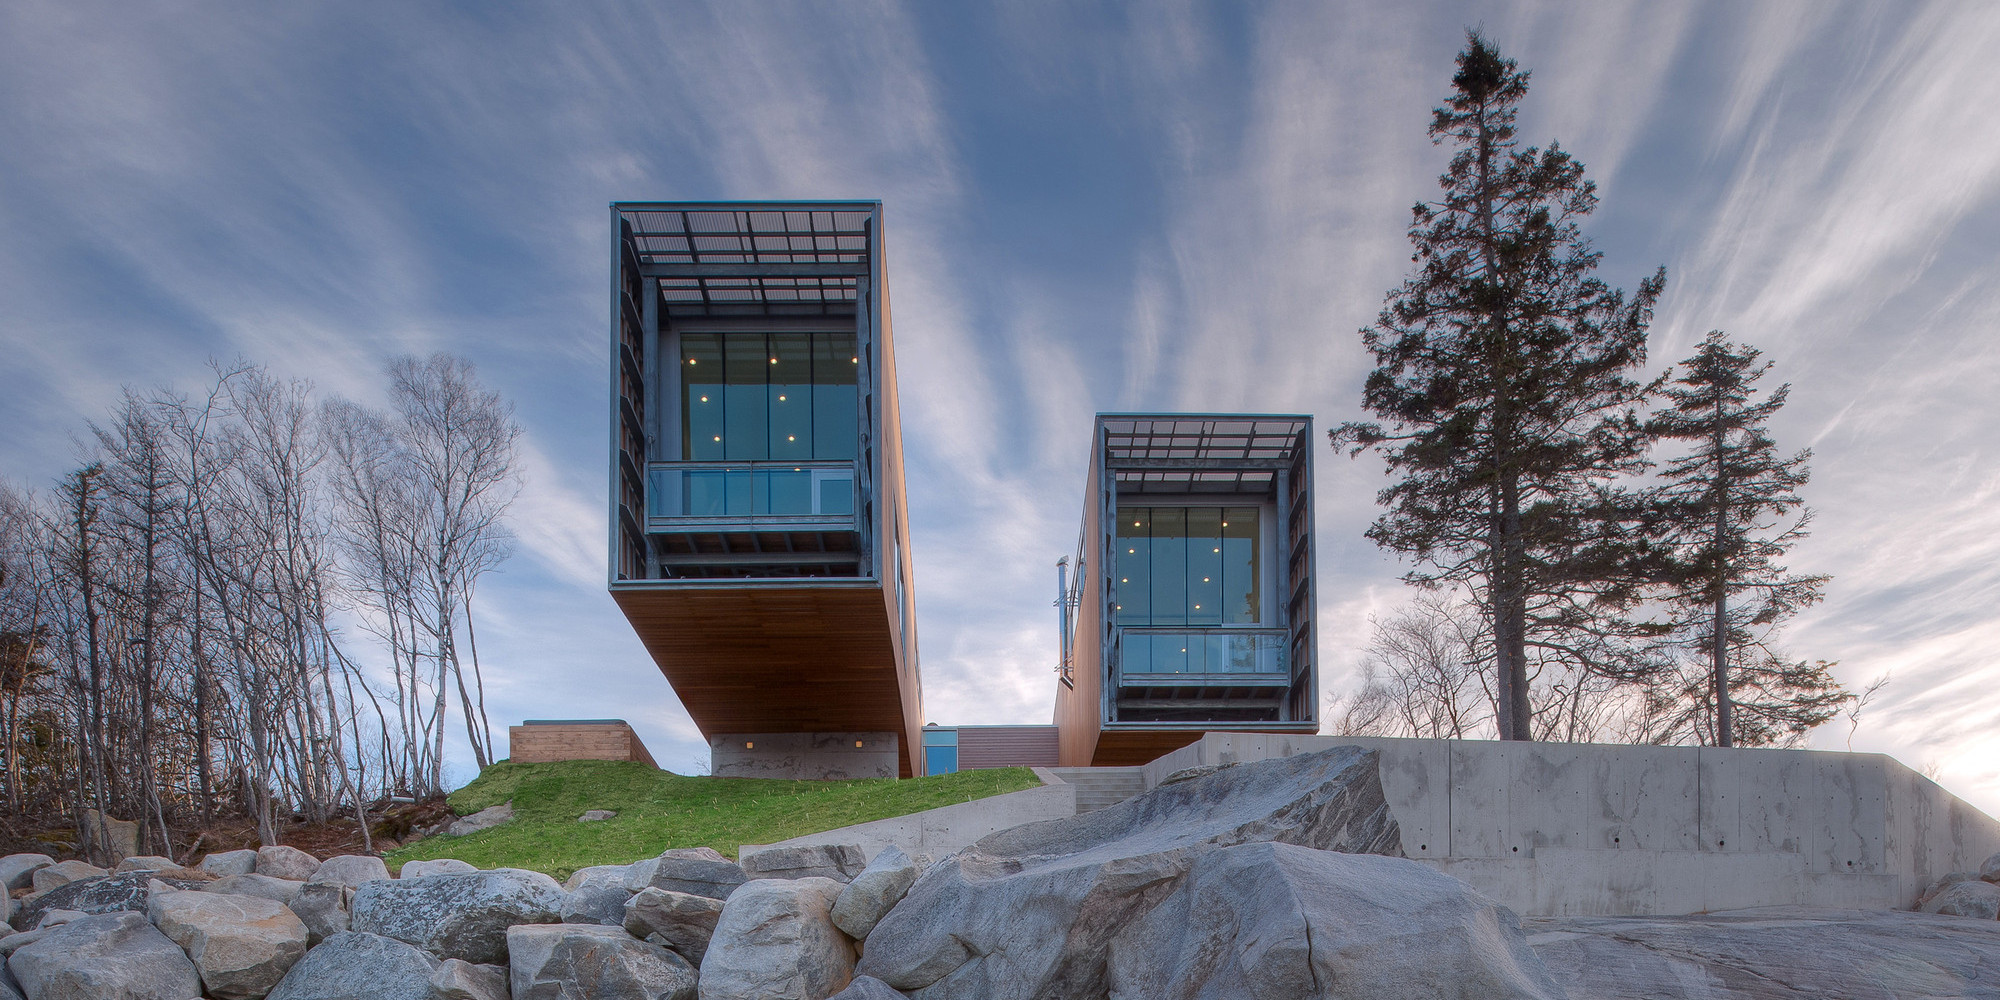 25 Contemporary Building Designs That Are Making A Splash In The ...